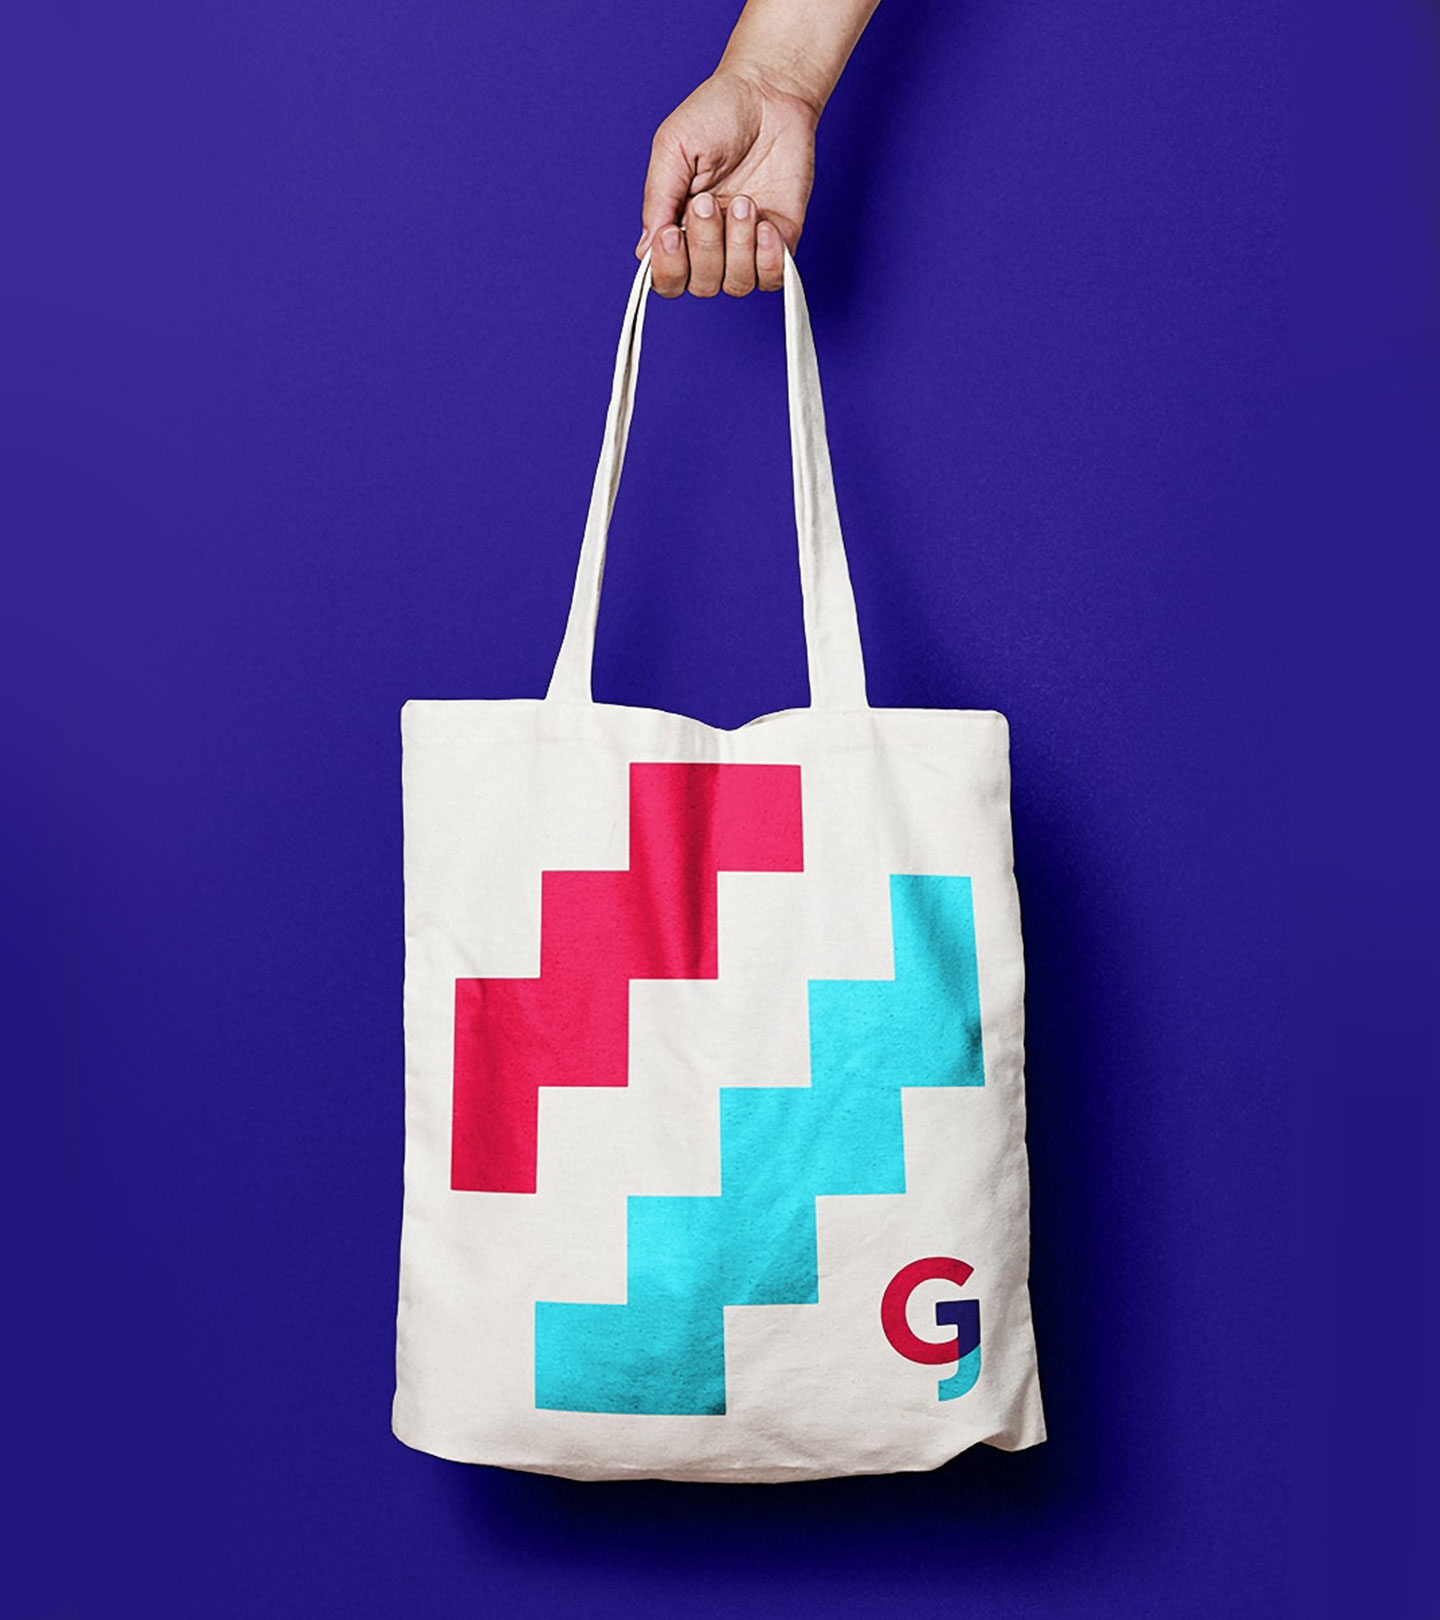 Gary Johnson spec campaign tote bag